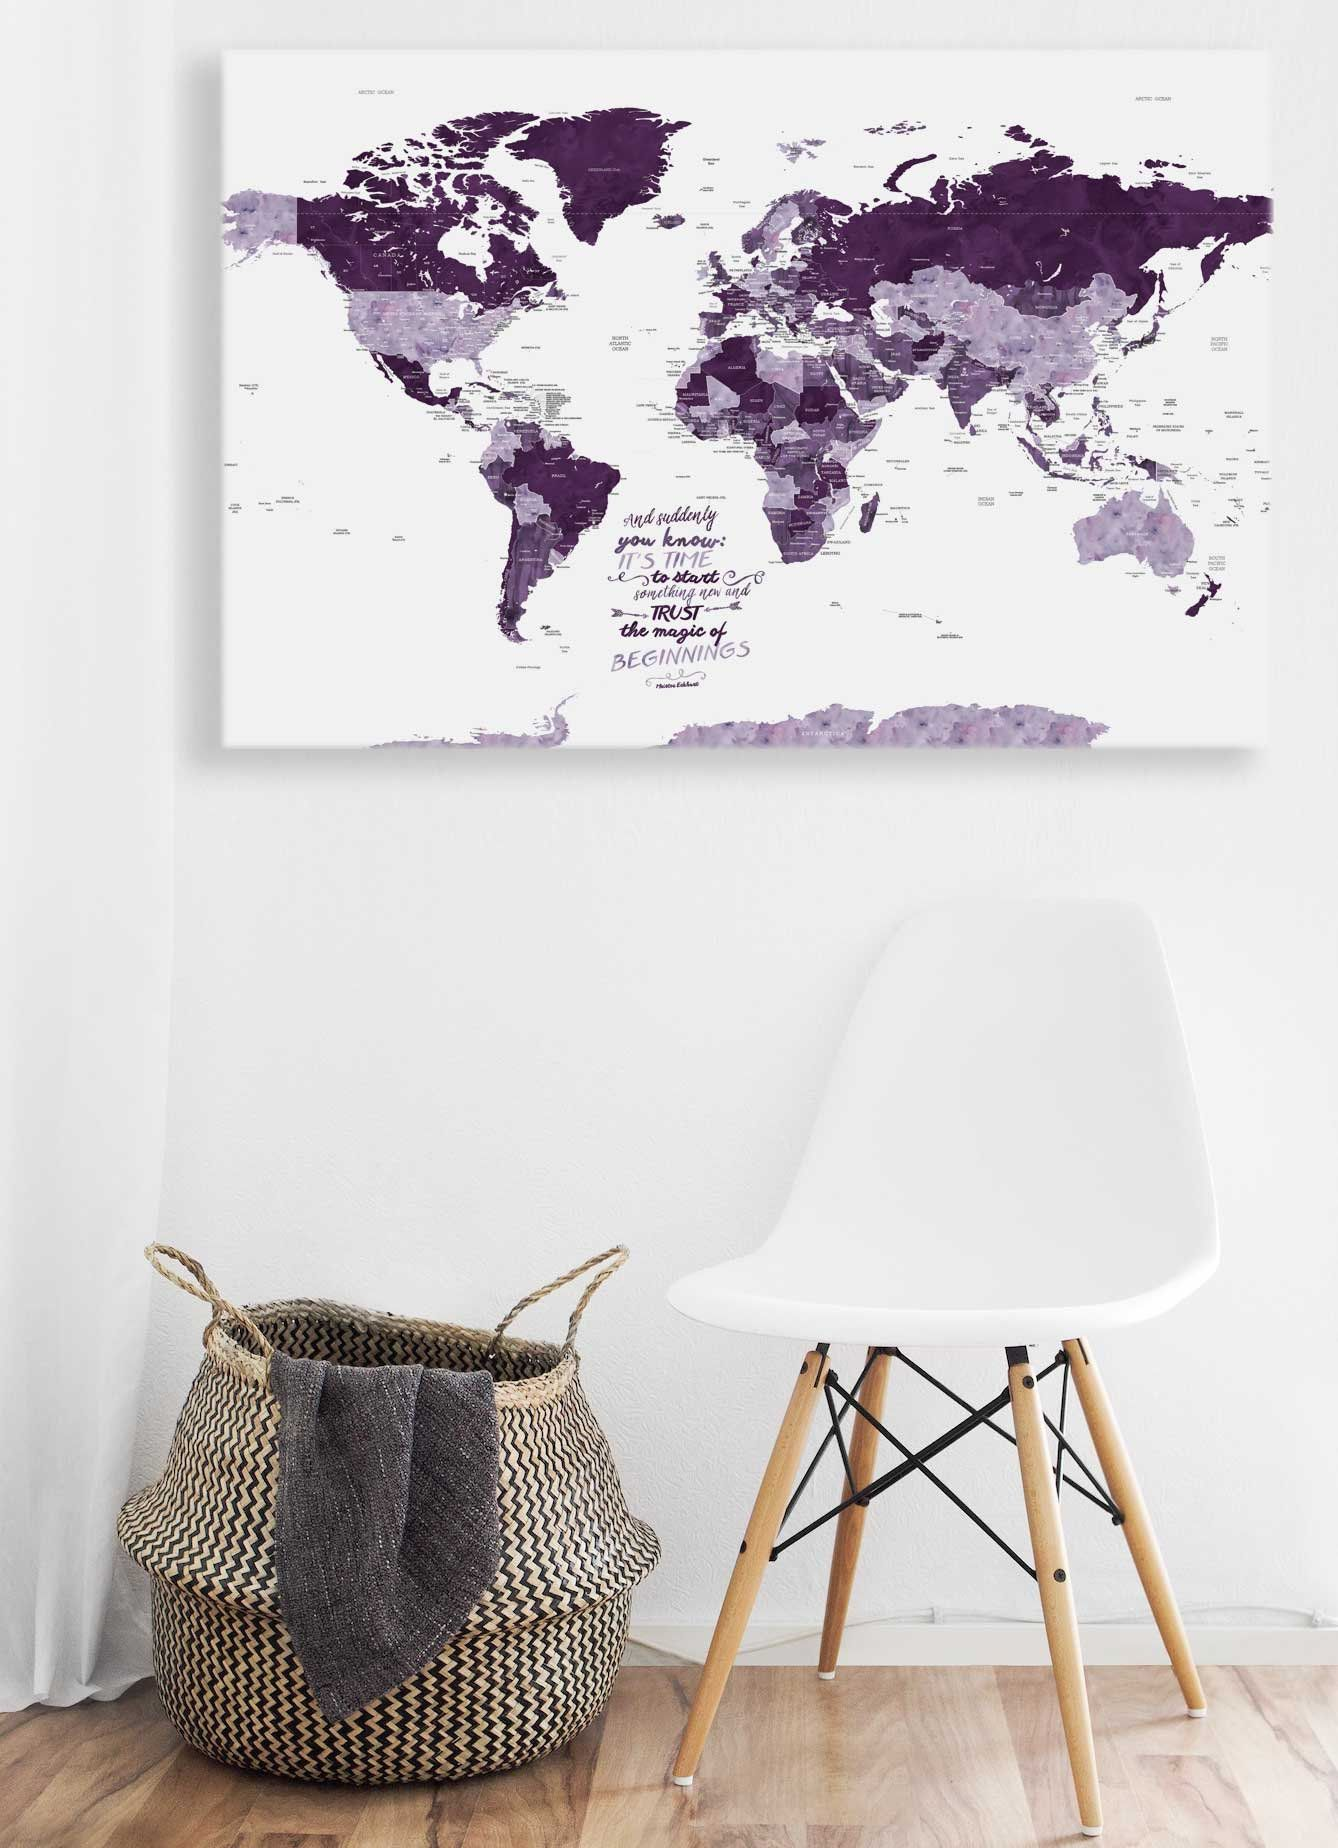 2nd Anniversary Gift Gift For Wife 5th Anniversary Gift World Map Canvas Personalized Gift World Map Push Pin Canvas Anniversary Gifts 2nd Anniversary Gift 1st Anniversary Gifts